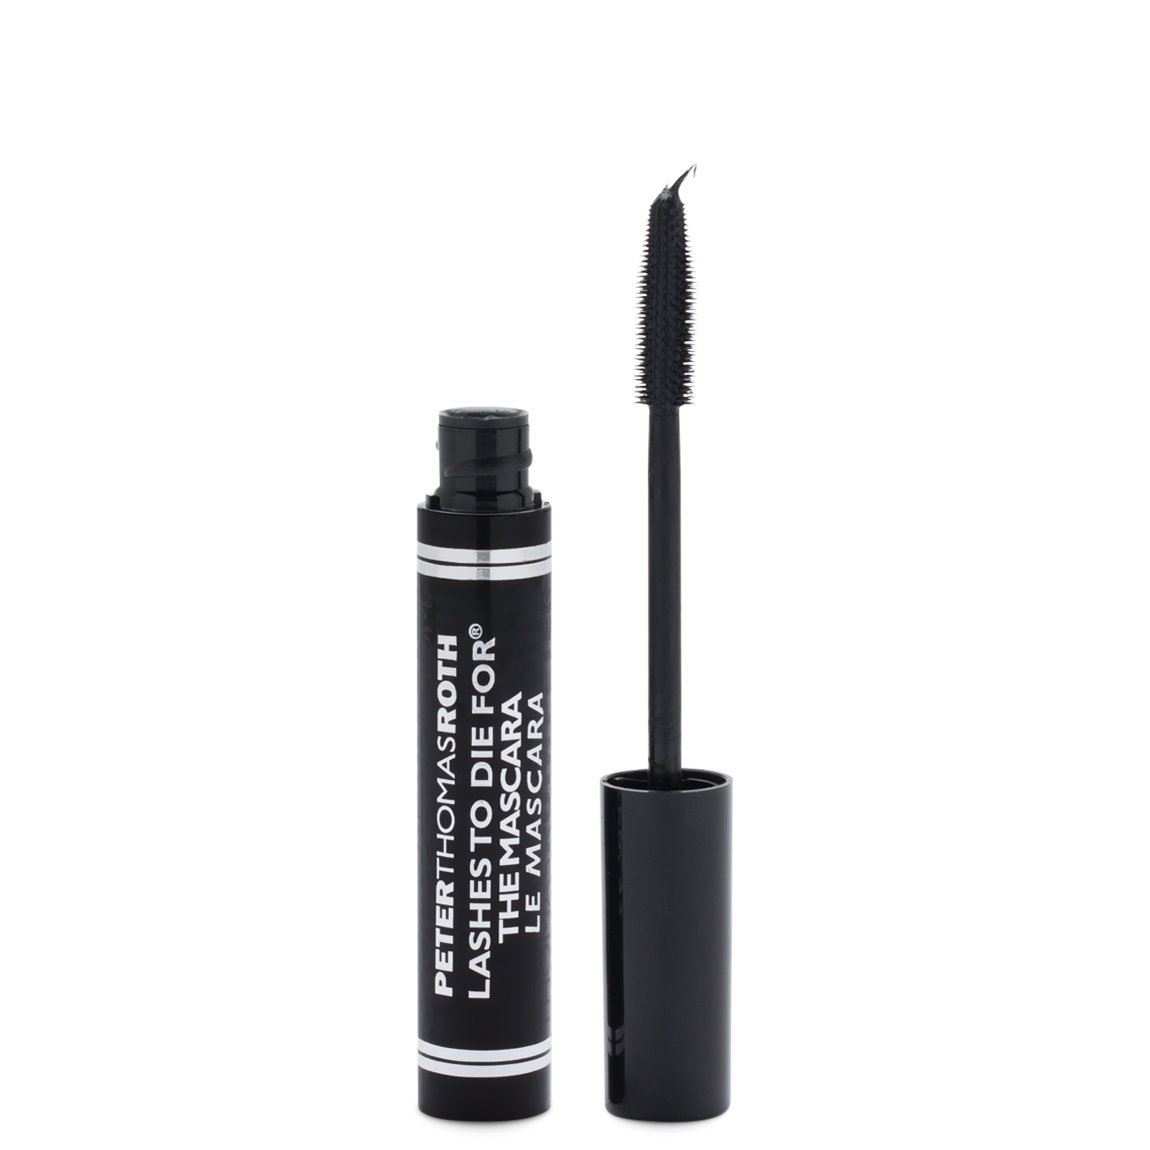 Peter Thomas Roth Lashes To Die For The Mascara product swatch.